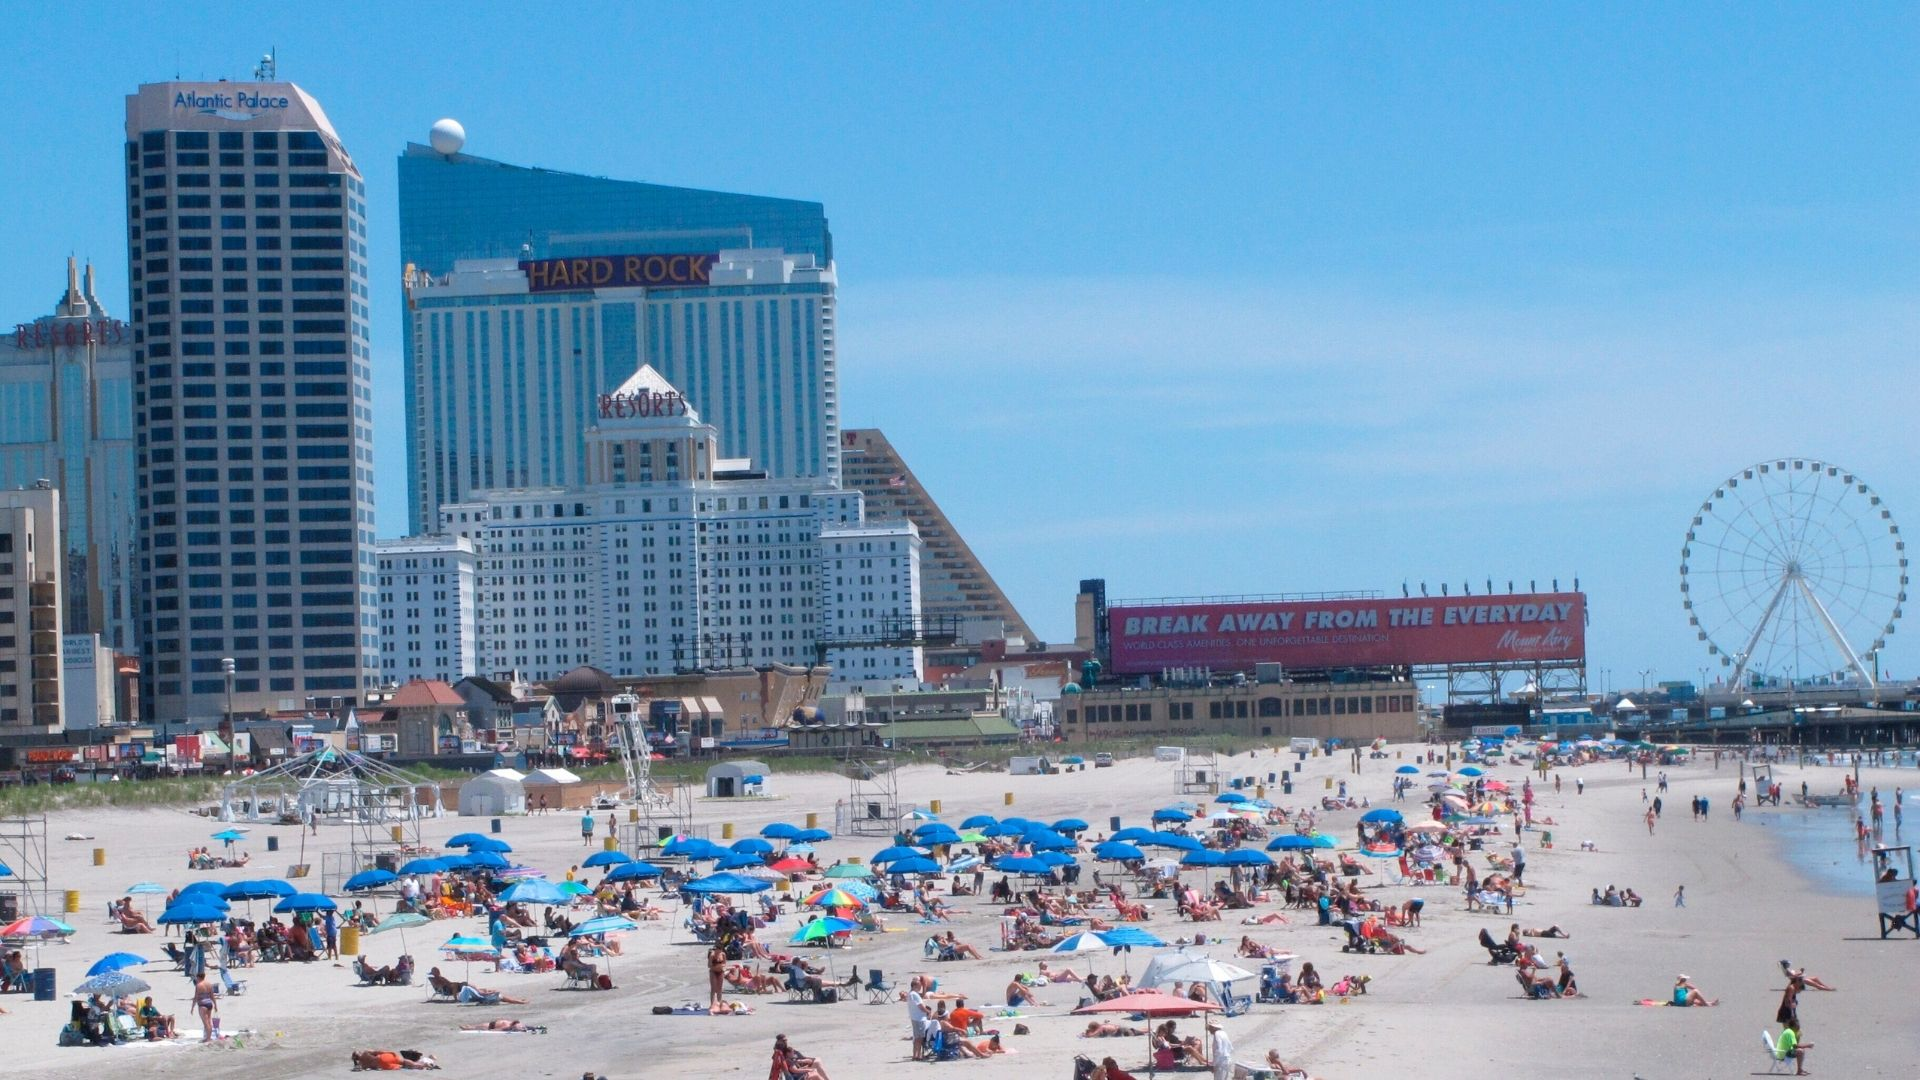 New Jersey Closer To Extending Atlantic City Takeover Pix11